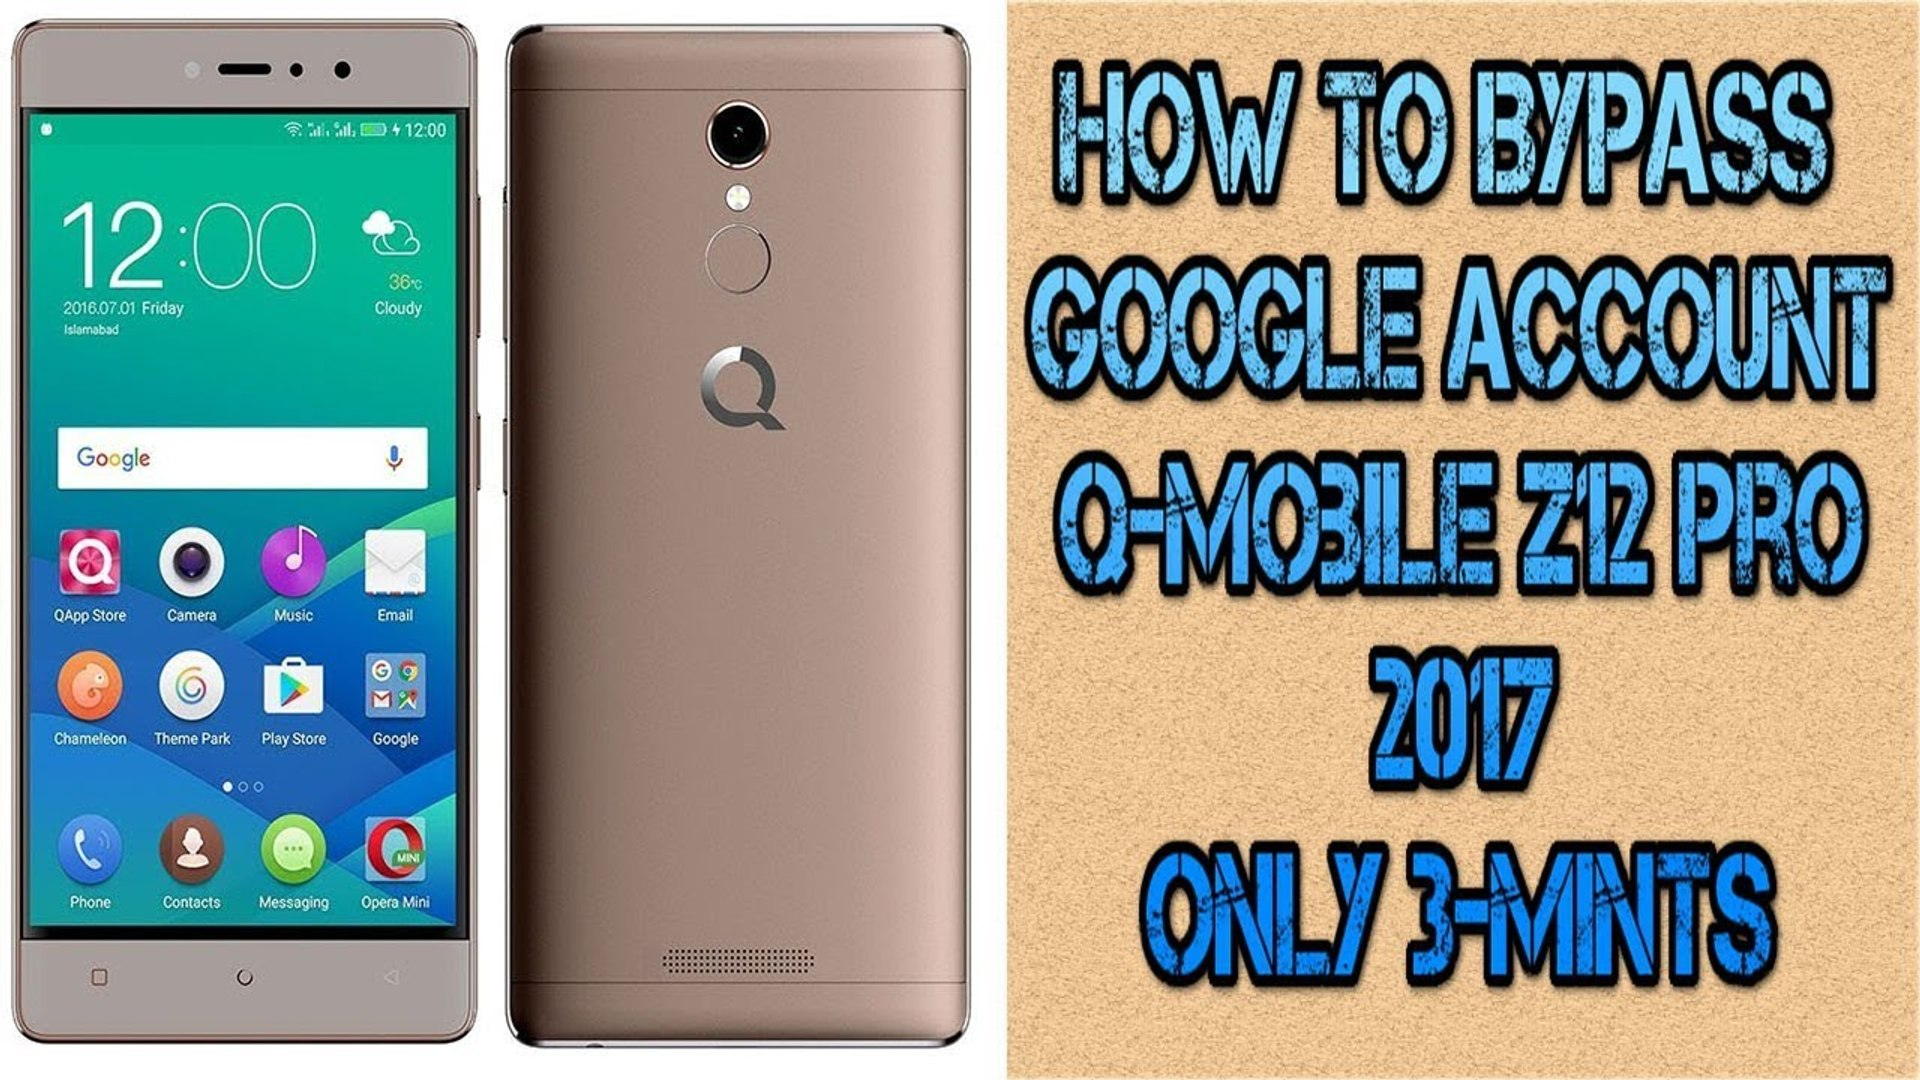 How To Bypass Google Account on Q-Mobile - QMobile Z12 Pro - bypass google  account verification 2017